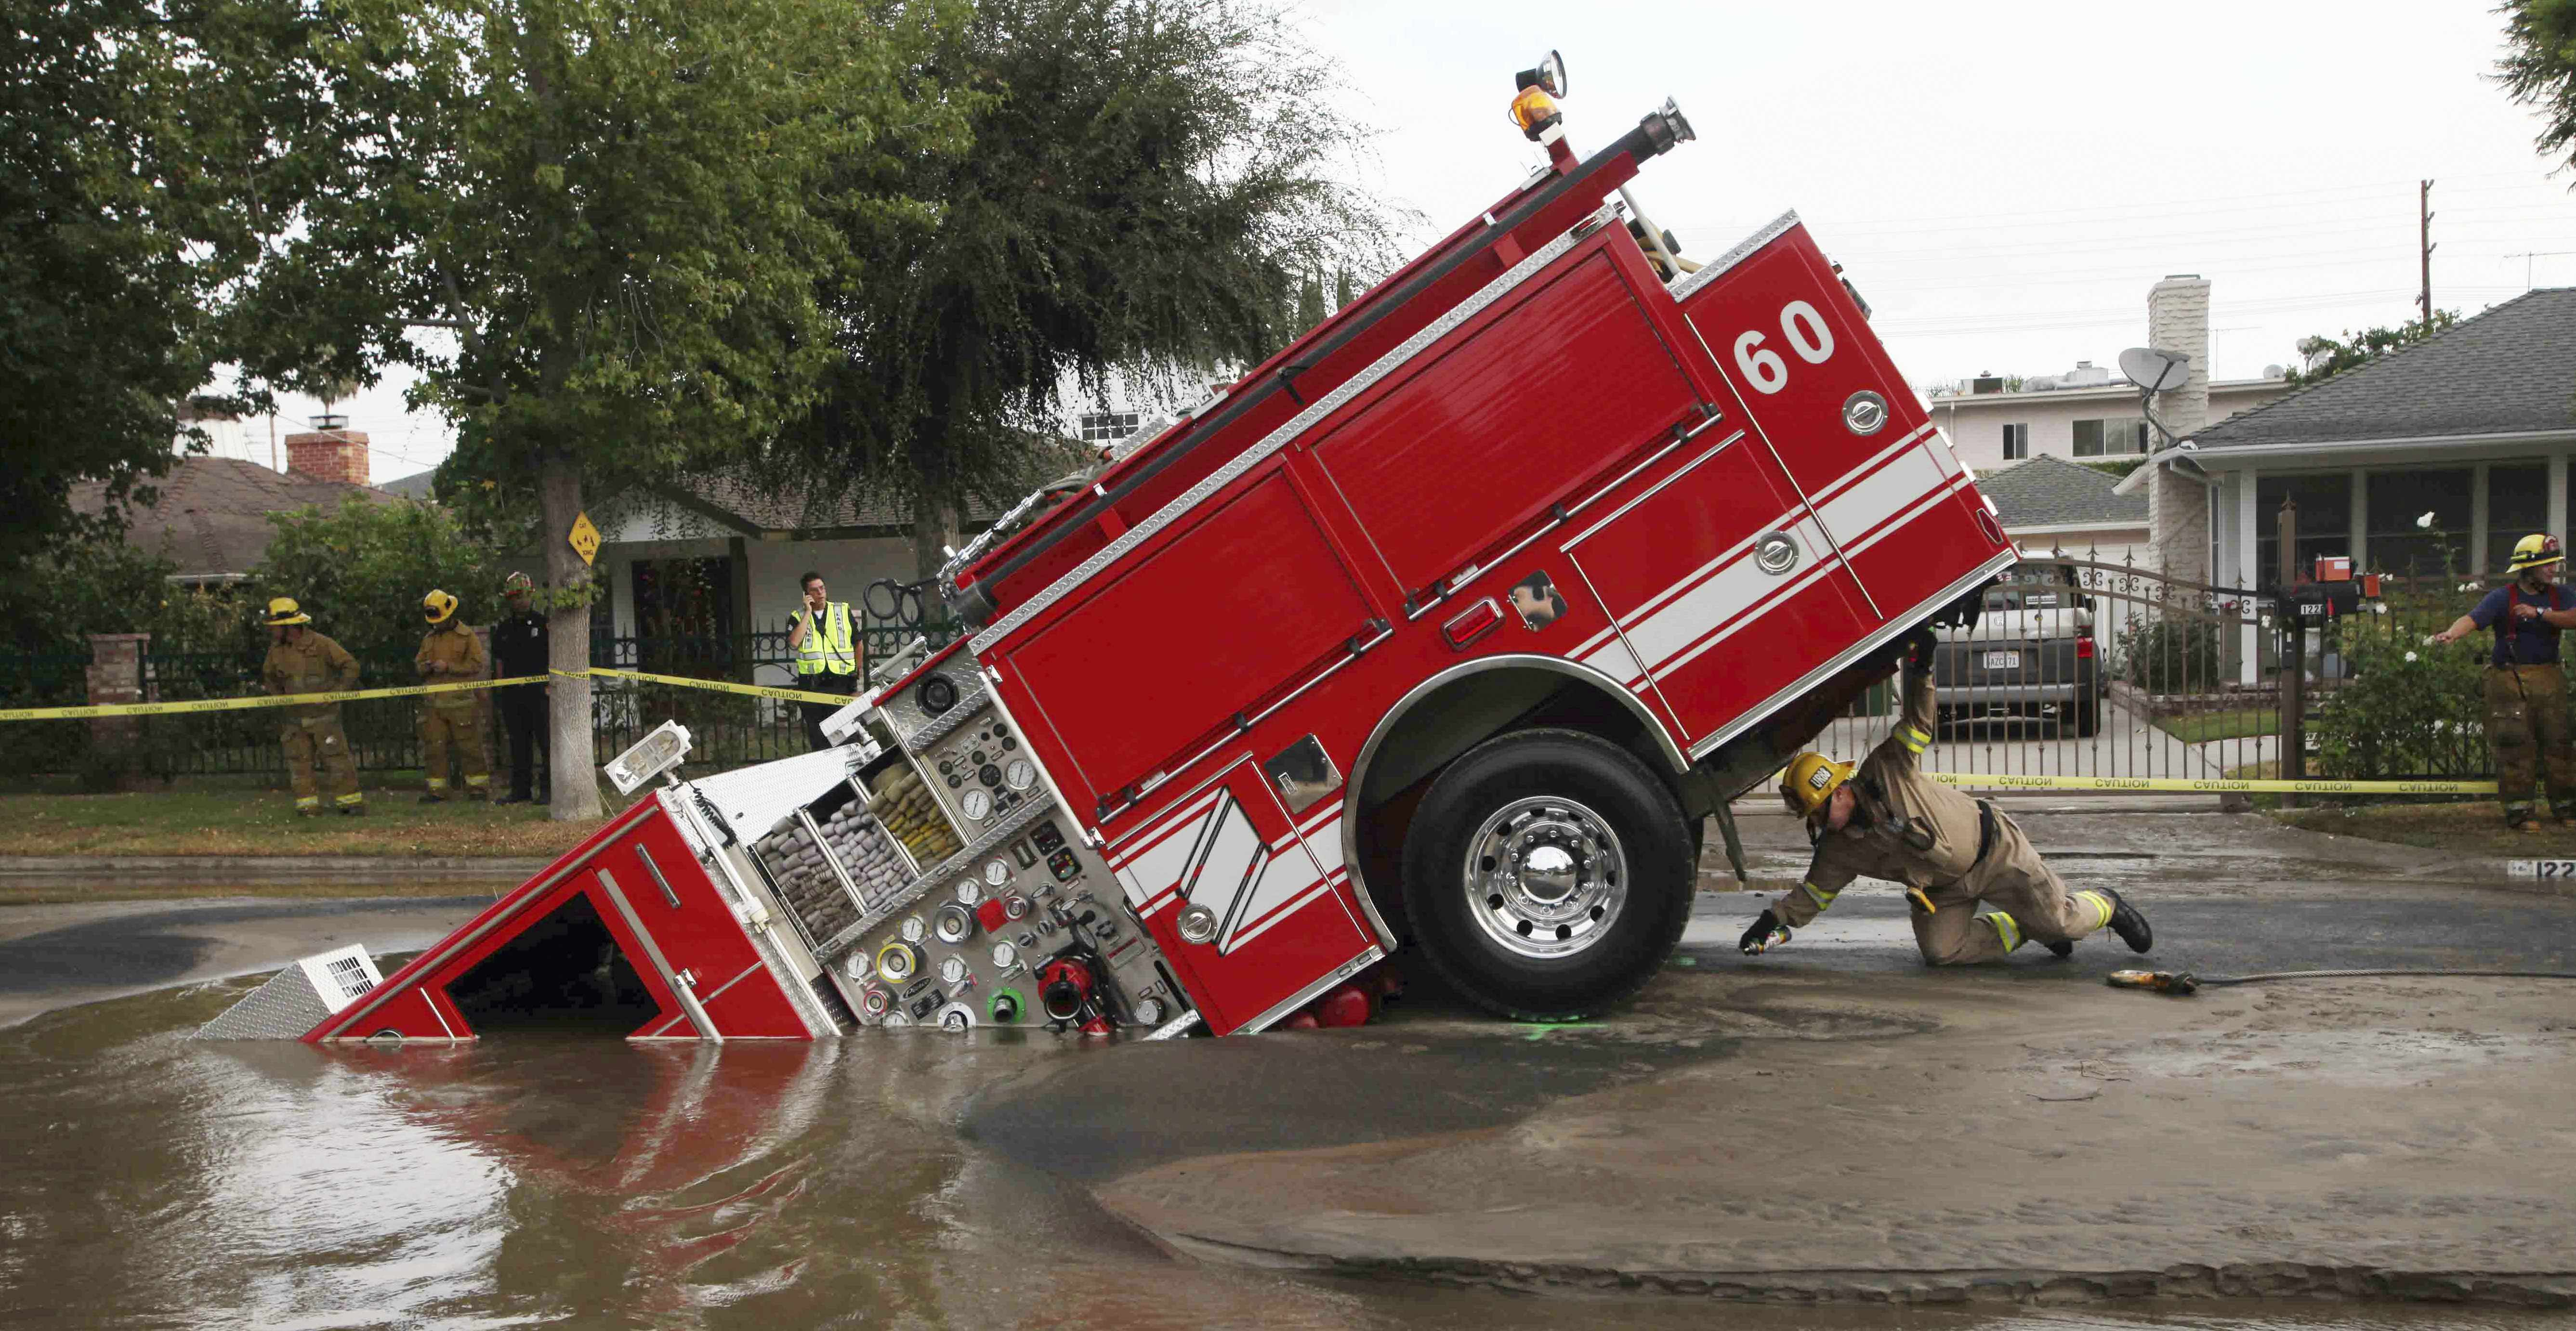 A Los Angeles fireman looks under a fire truck stuck in a sinkhole in the Valley Village neighborhood of Los Angeles, Sept. 8, 2009. Four firefighters escaped injury early Tuesday after their fire engine sunk into a large hole caused by a burst water main in the San Fernando Valley, authorities said.